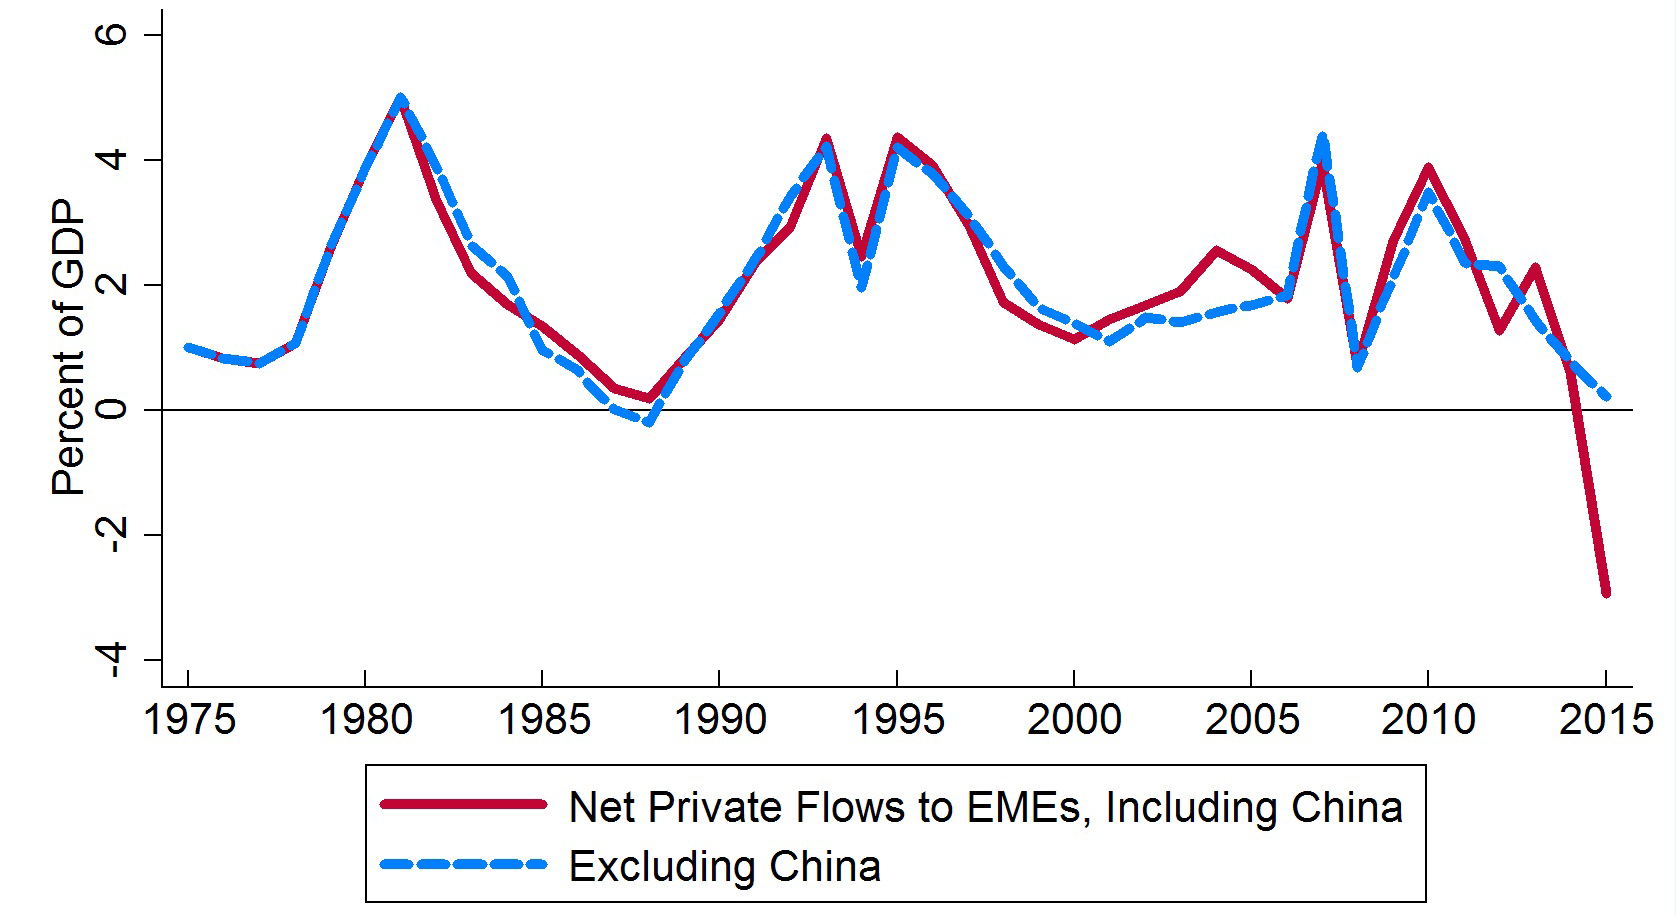 Frb emerging market capital flows and us monetary policy chart 1 net annual private flows to emerging markets in a historical perspective nvjuhfo Gallery